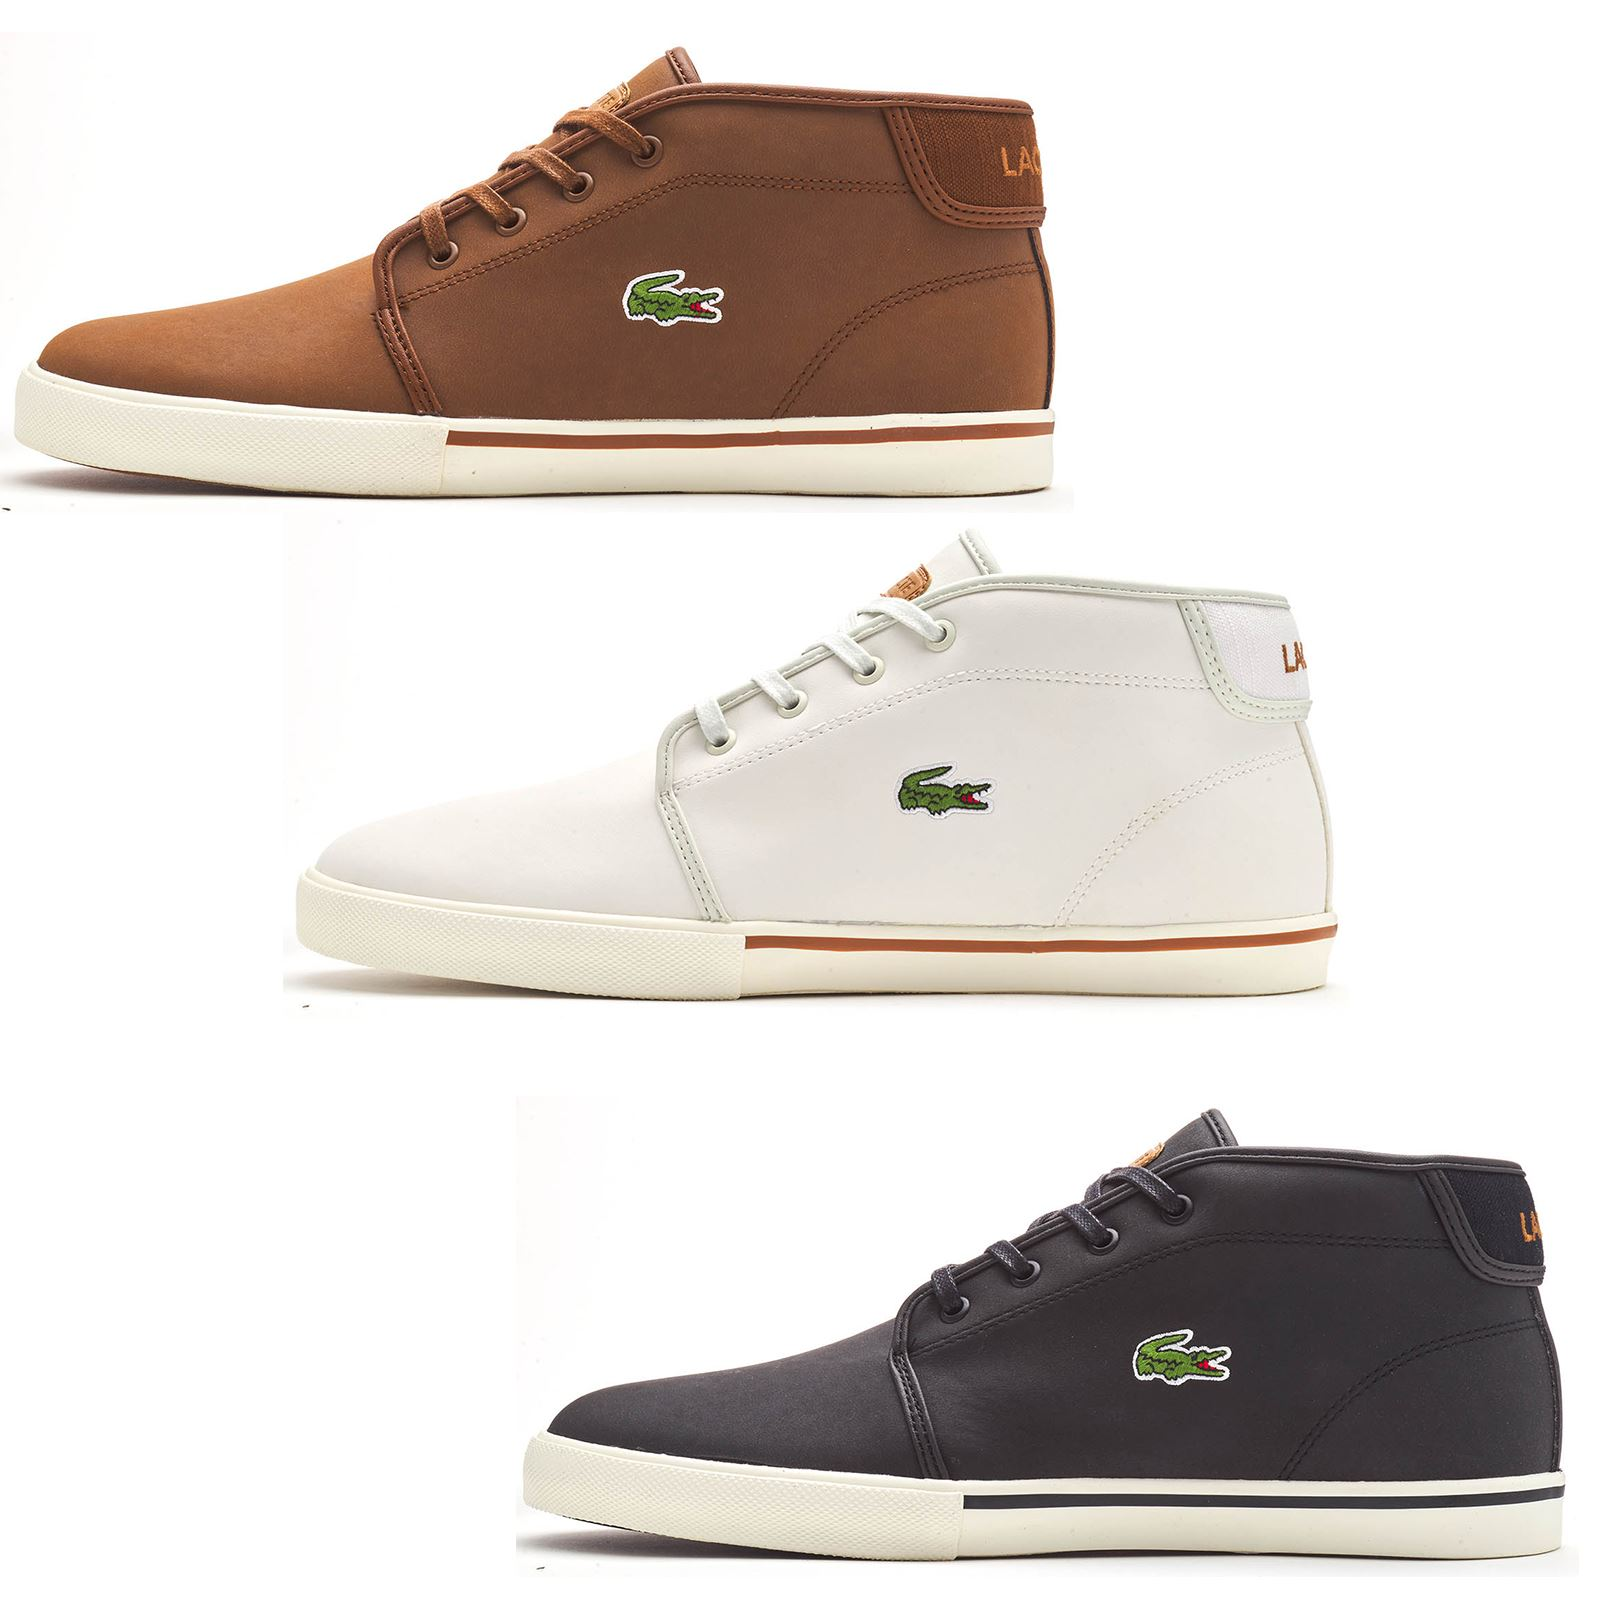 f42709e749 Details about Lacoste Ampthill 119 1 CMA Chukka Boots Hi Top Trainers in  Black, Brown & White